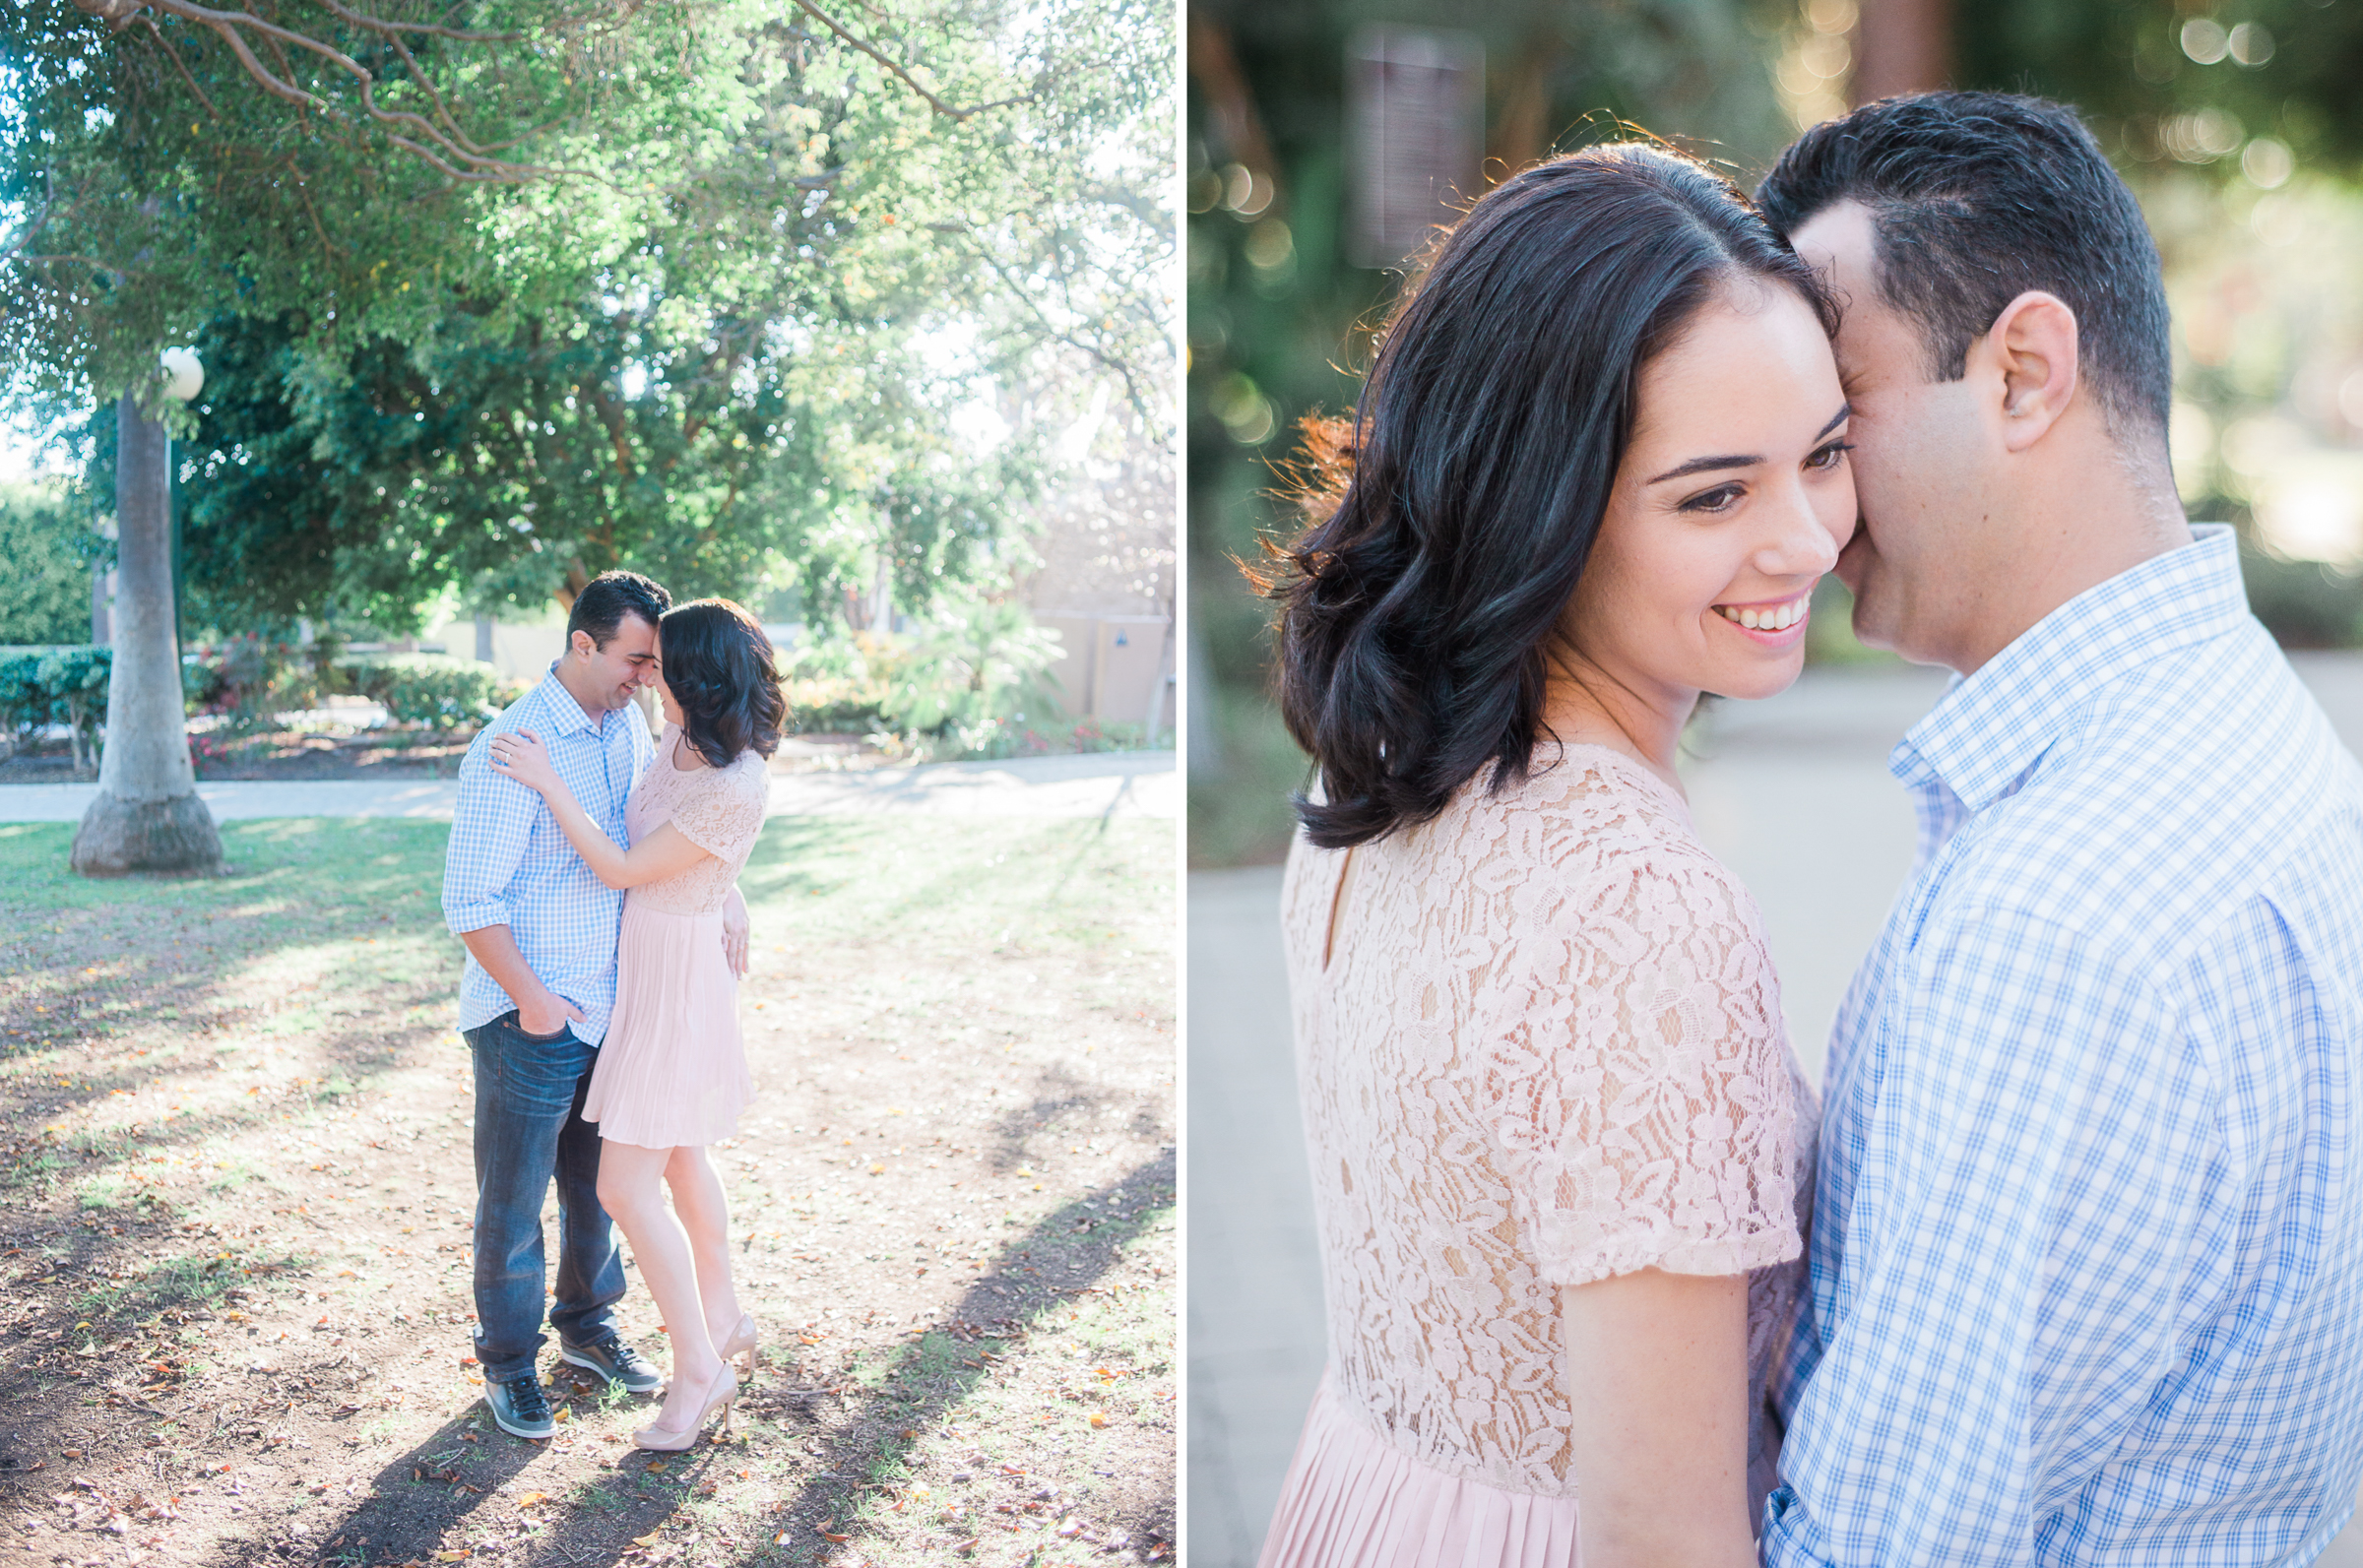 los_angeles_engagement_session_photography_Will_Rogers_Memorial_Park-1.jpg